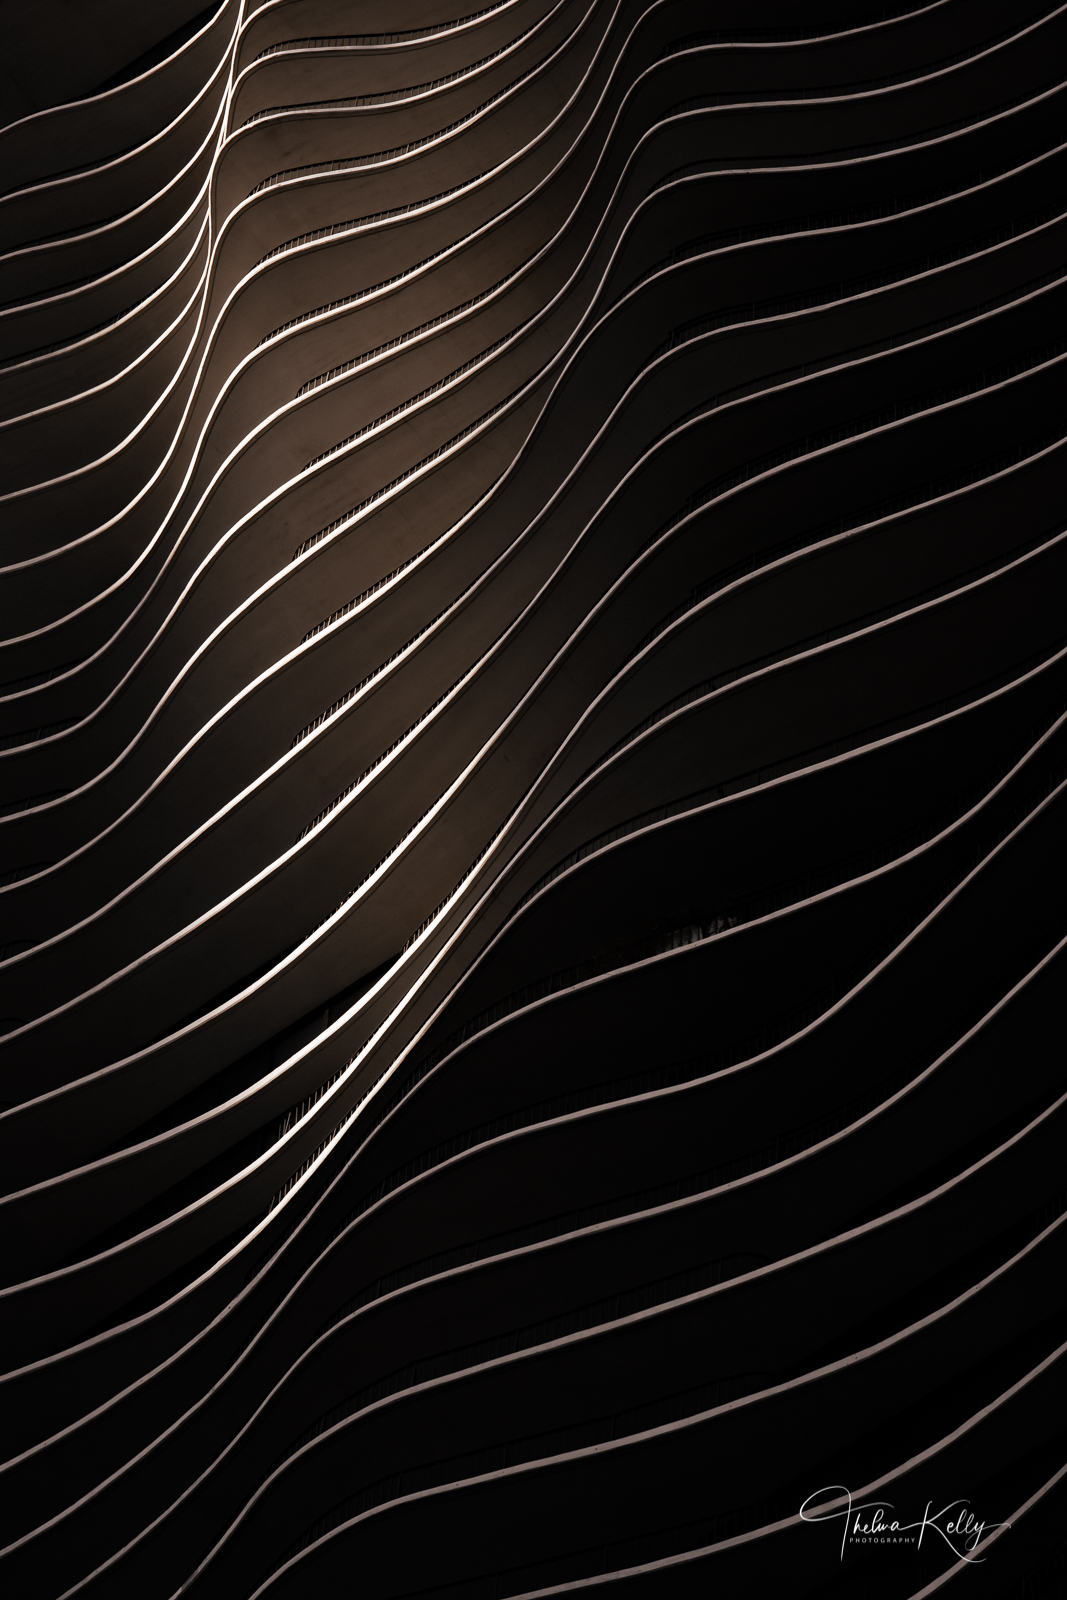 A Limited Edition of 50 This abstract image showcases 82 stories of sensual lines, curves, and waves... the Aqua Tower, of course...